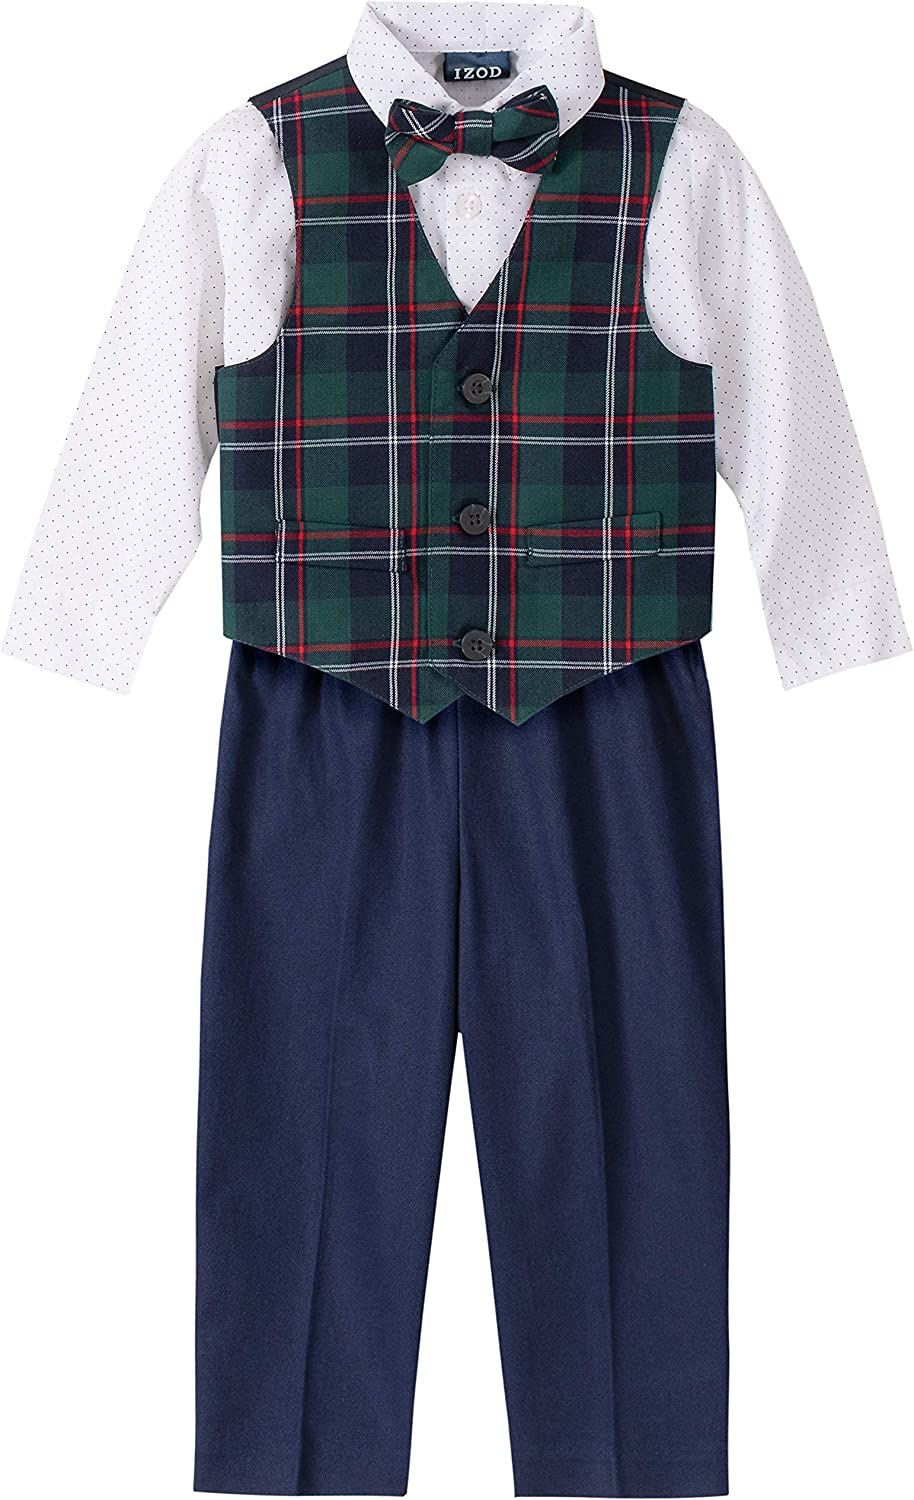 Bow Tie Shorts and Vest IZOD Boys 4-Piece Set with Dress Shirt